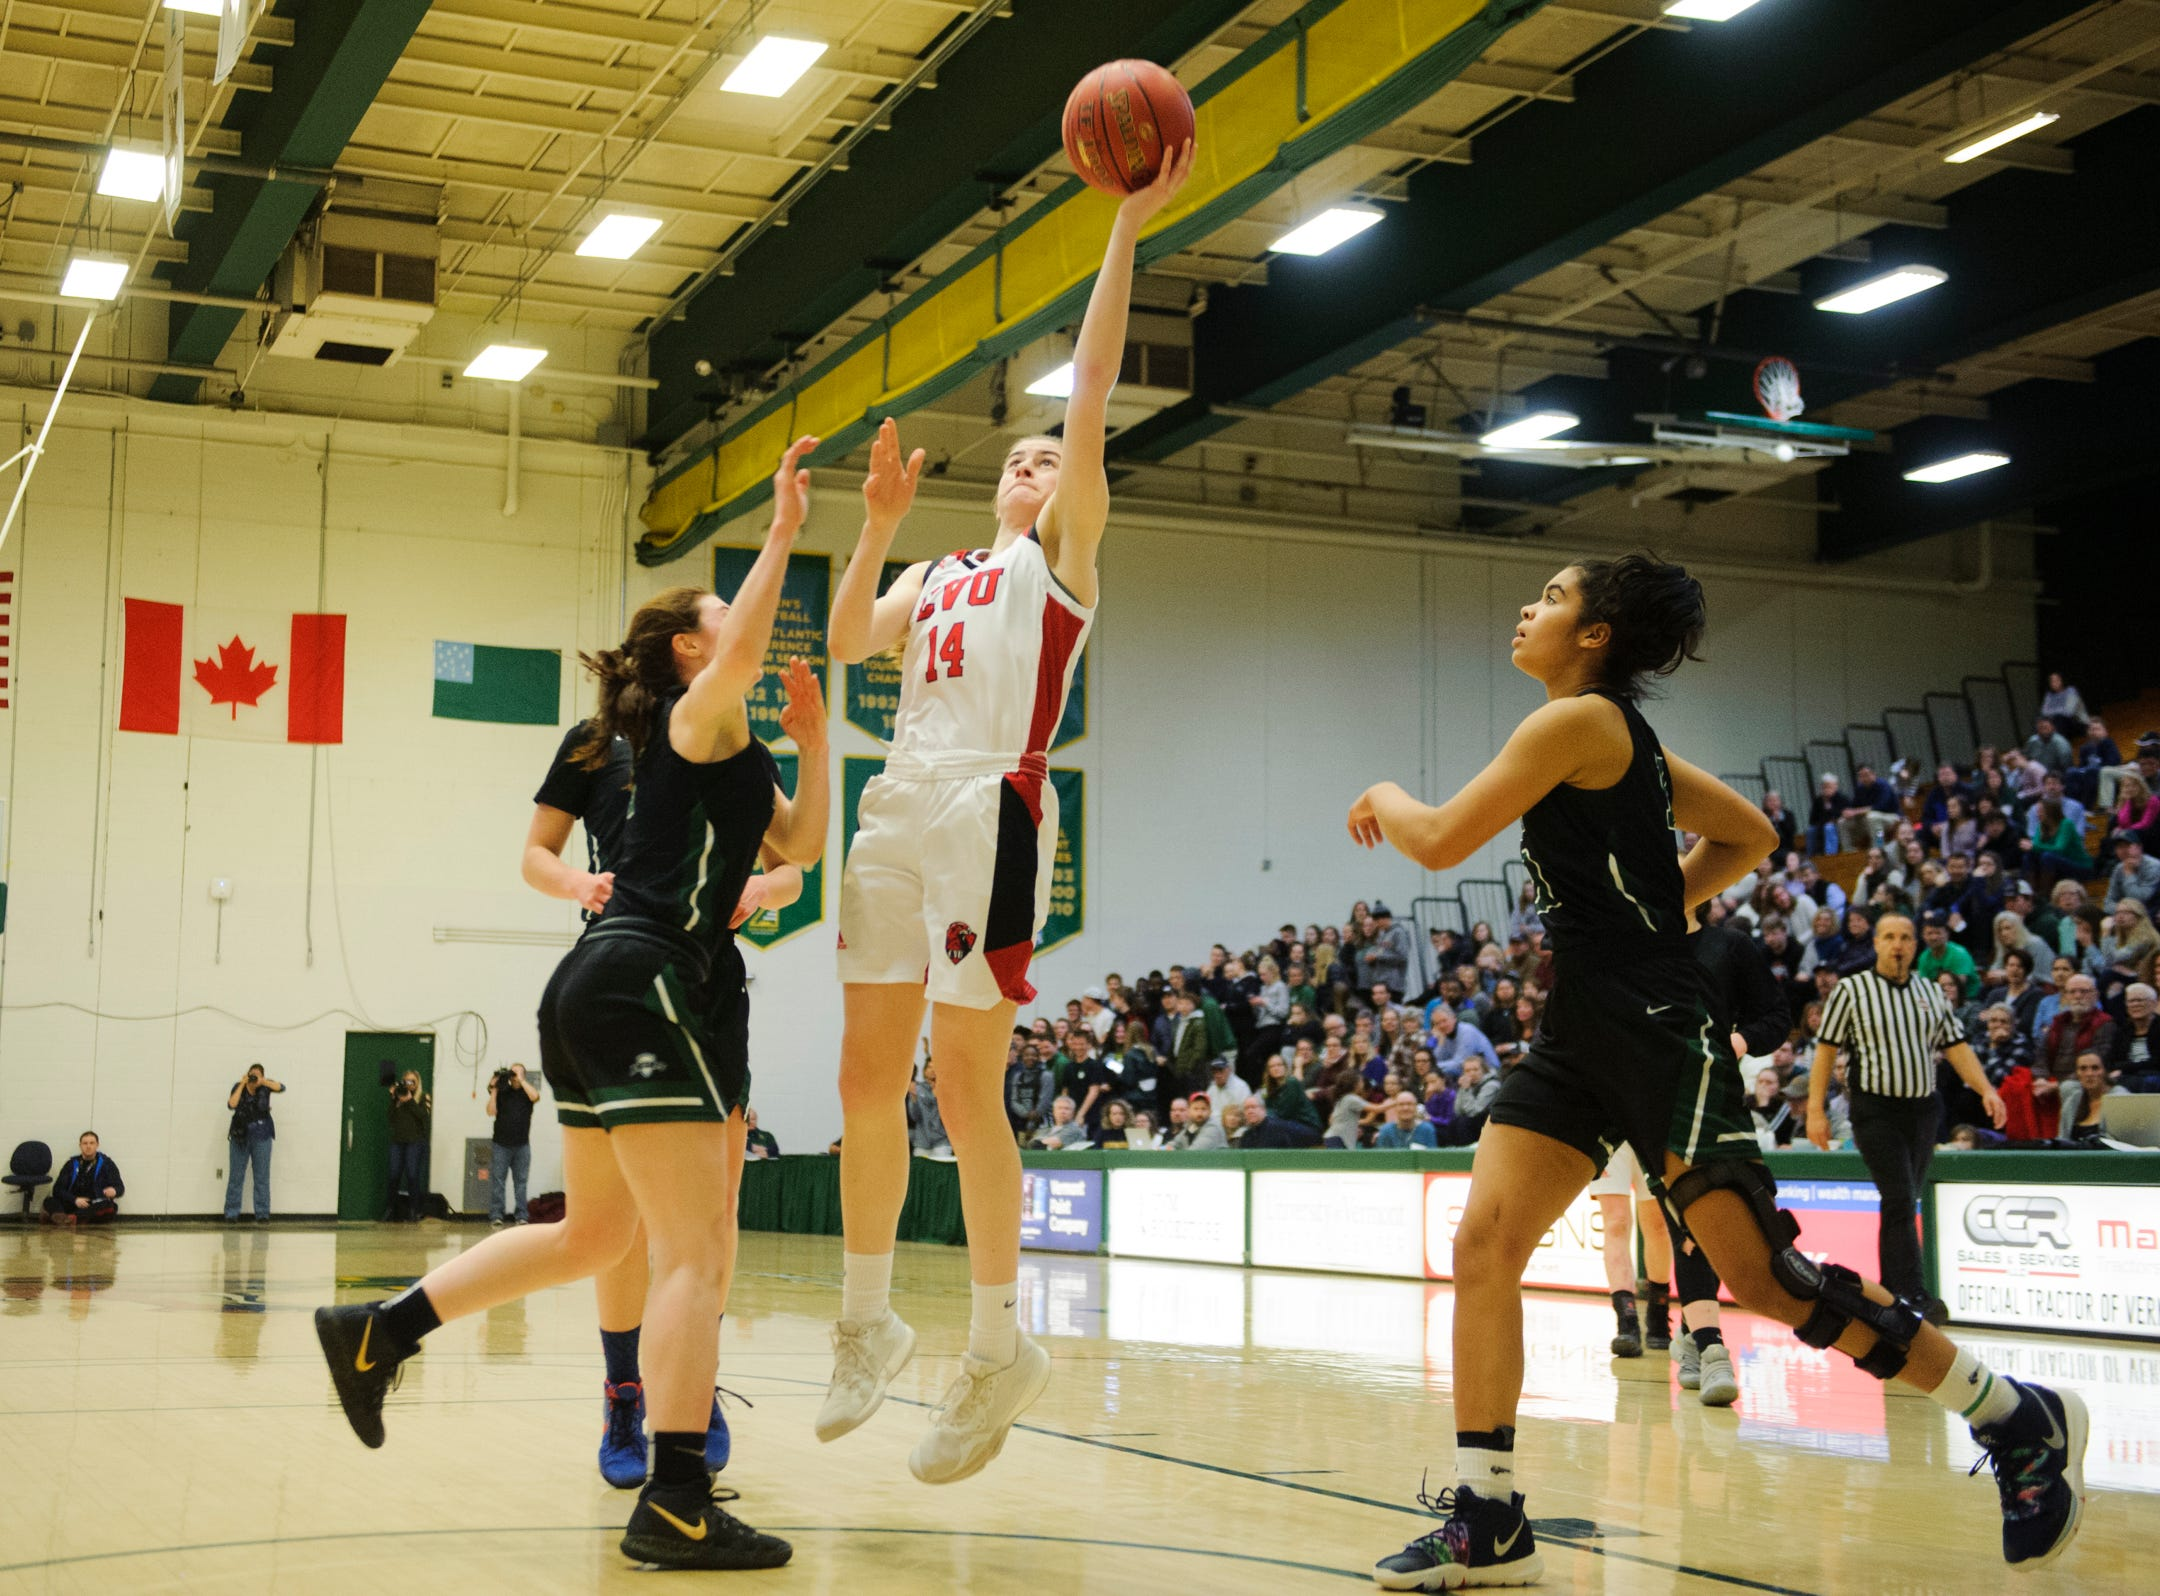 CVU's Julia Blanck (14) leaps for a lay up during the girls semifinal basketball game between the Rice Green Knights and the Champlain Valley Union Redhawks at Patrick Gym on Wednesday nigh March 6, 2019 in Burlington, Vermont.